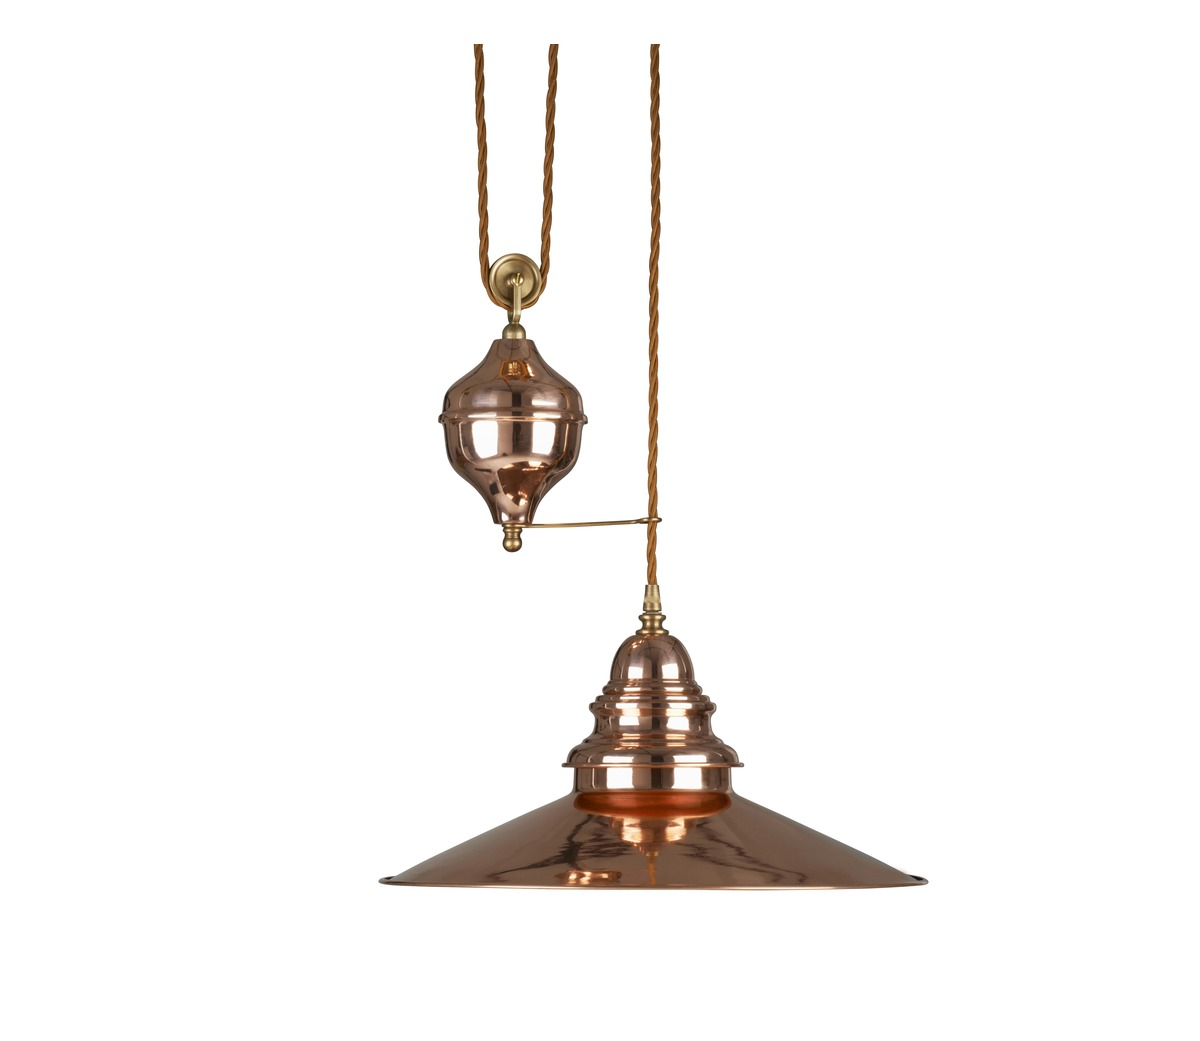 Lighting Gt Pendant Gt Copper Rise And Fall Light